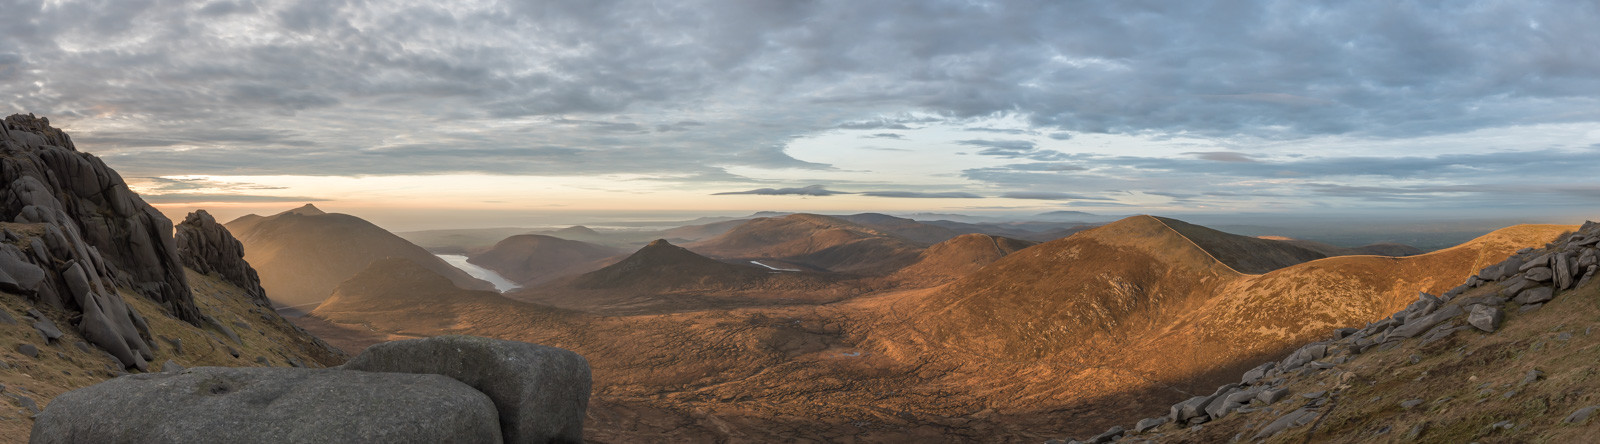 PDI - Mourne Mountains Sunrise by Philip Blair (10 marks)